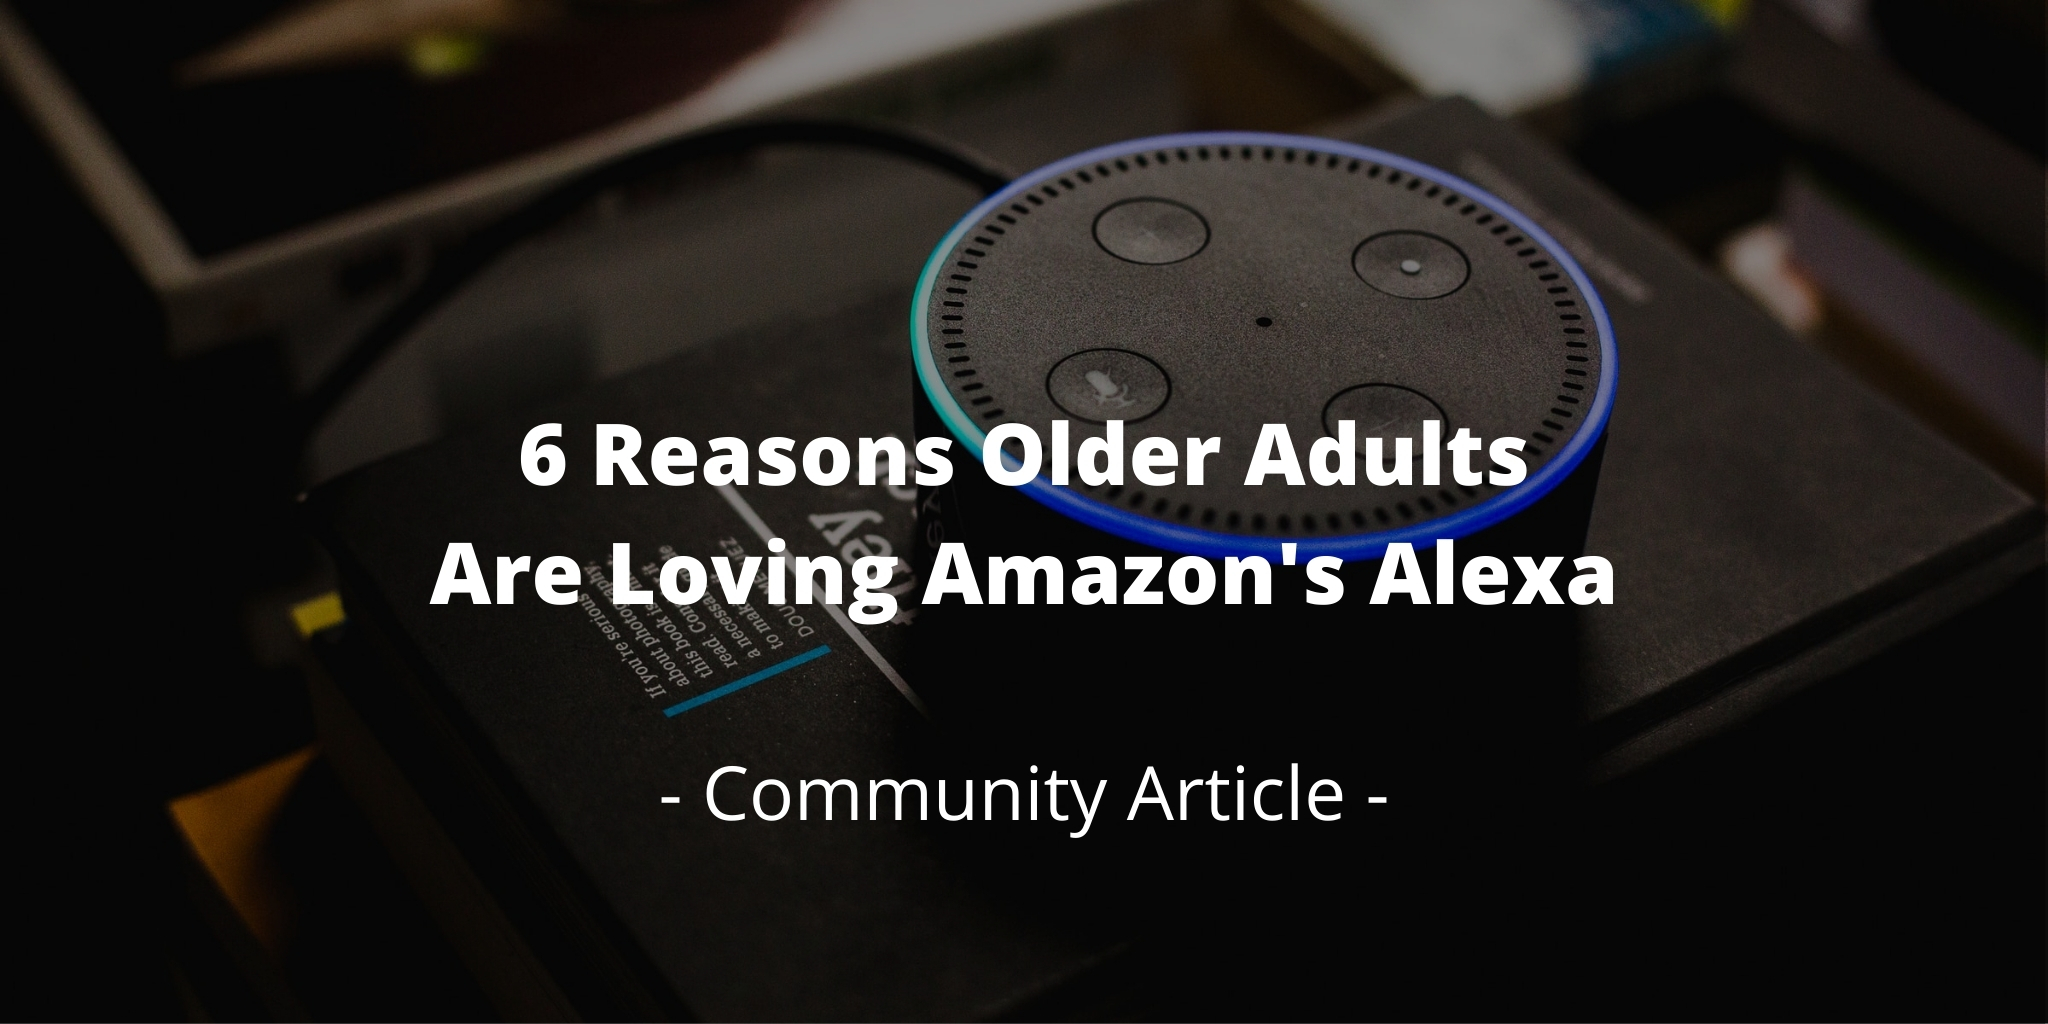 6 Reasons Older Adults Are Loving Amazon's Alexa